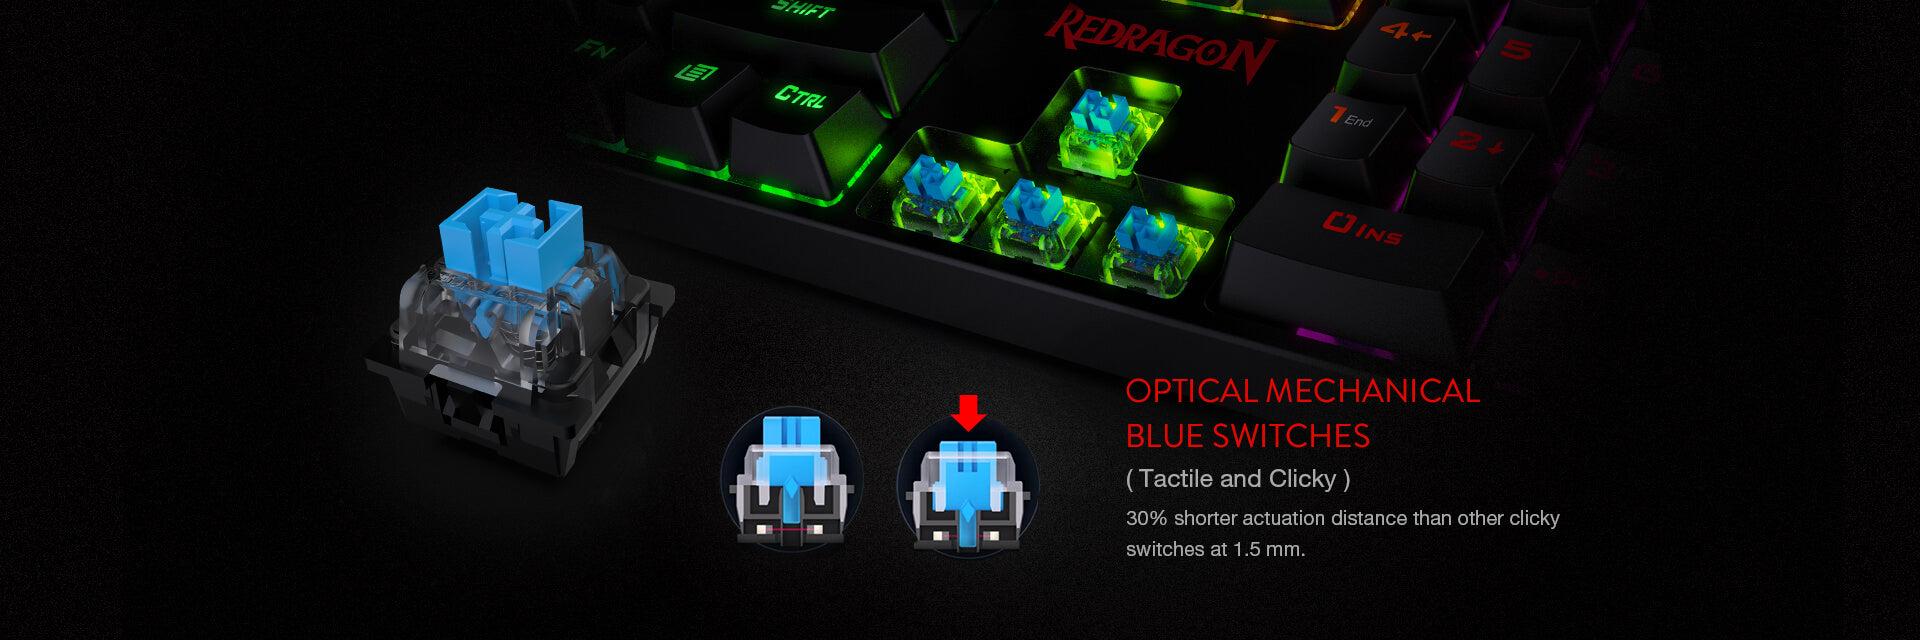 redragon k582 pro gaming keyboard